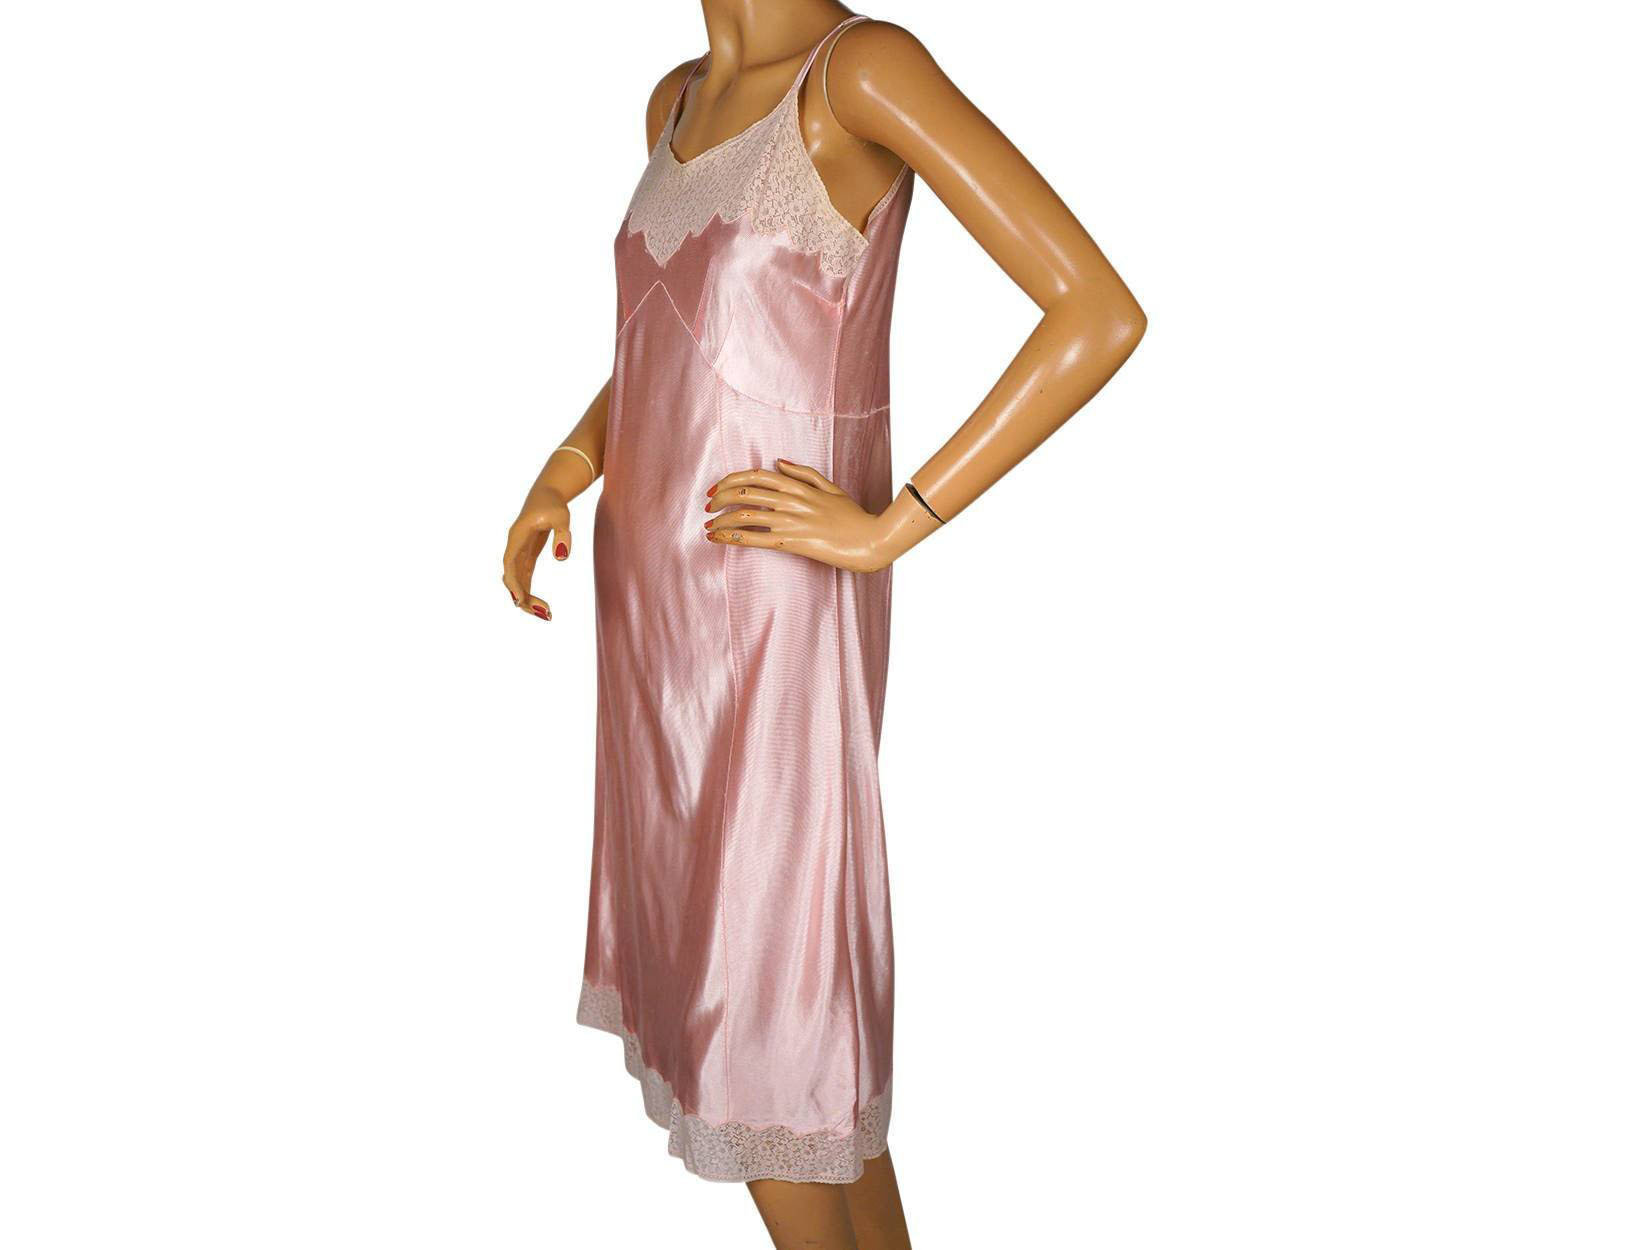 3e29459a3890a Vintage 1930s Slip Pink Rayon Jersey and Lace Size S | Etsy